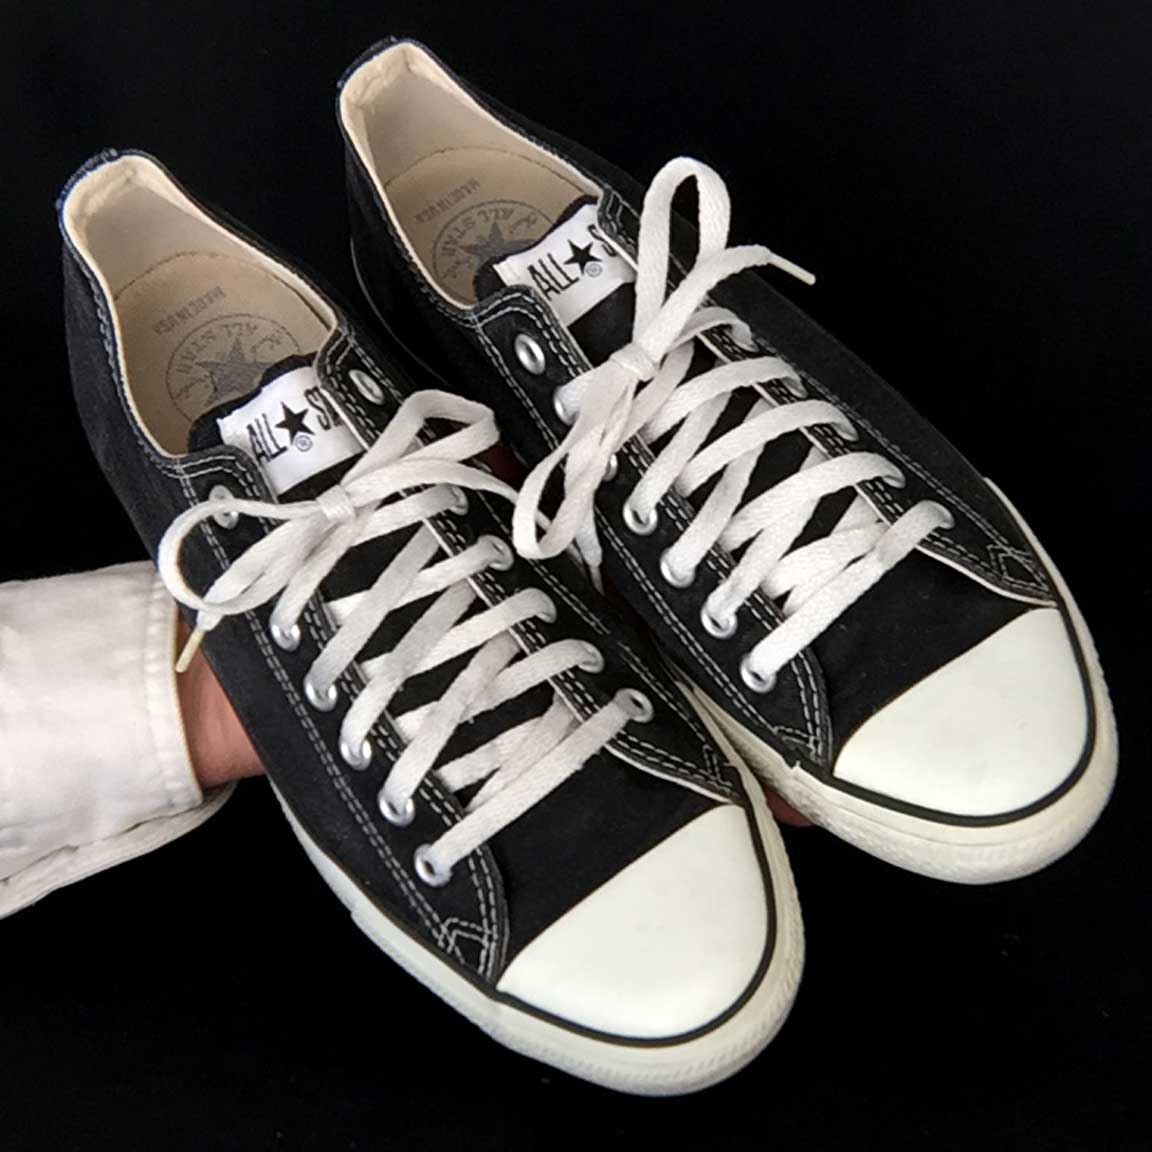 Taylors For American All Vintage made Converse Star Sale Chuck H2ID9E